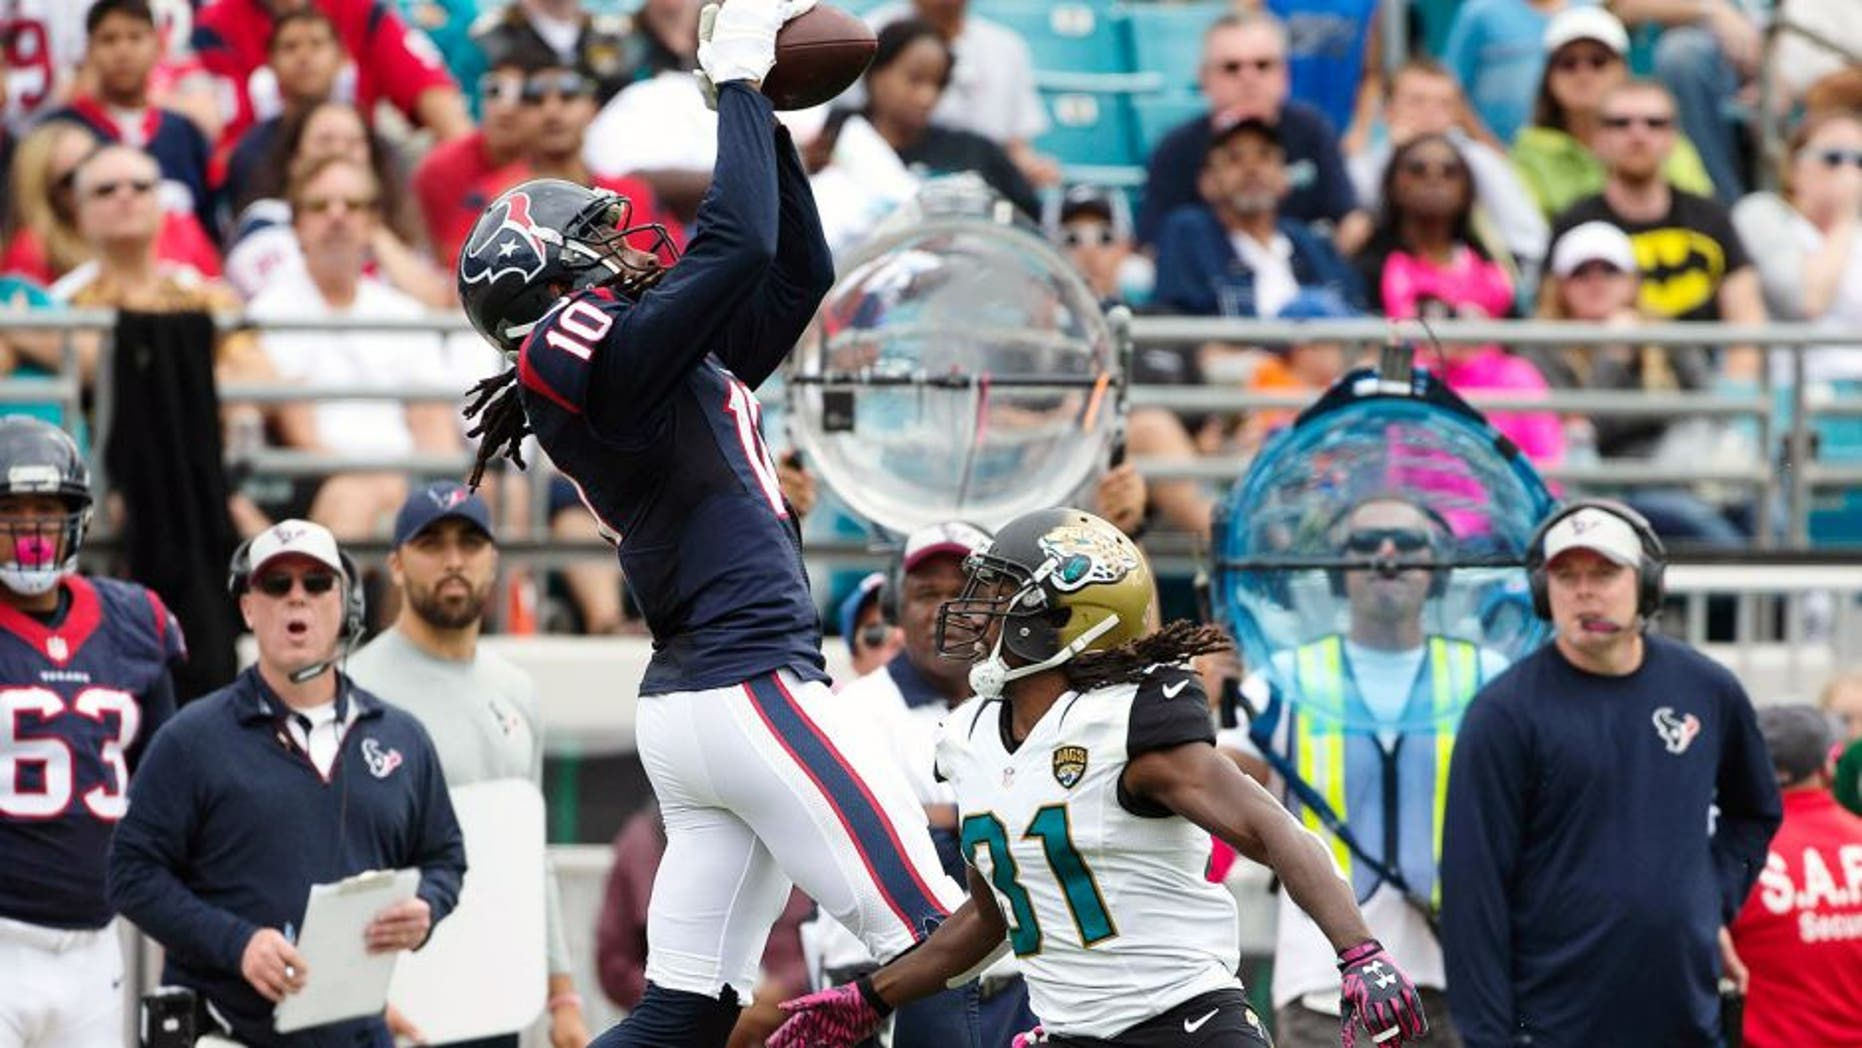 Oct 18, 2015; Jacksonville, FL, USA; Houston Texans wide receiver DeAndre Hopkins (10) makes a catch over Jacksonville Jaguars cornerback Davon House (right) in the second quarter at EverBank Field. Mandatory Credit: Logan Bowles-USA TODAY Sports